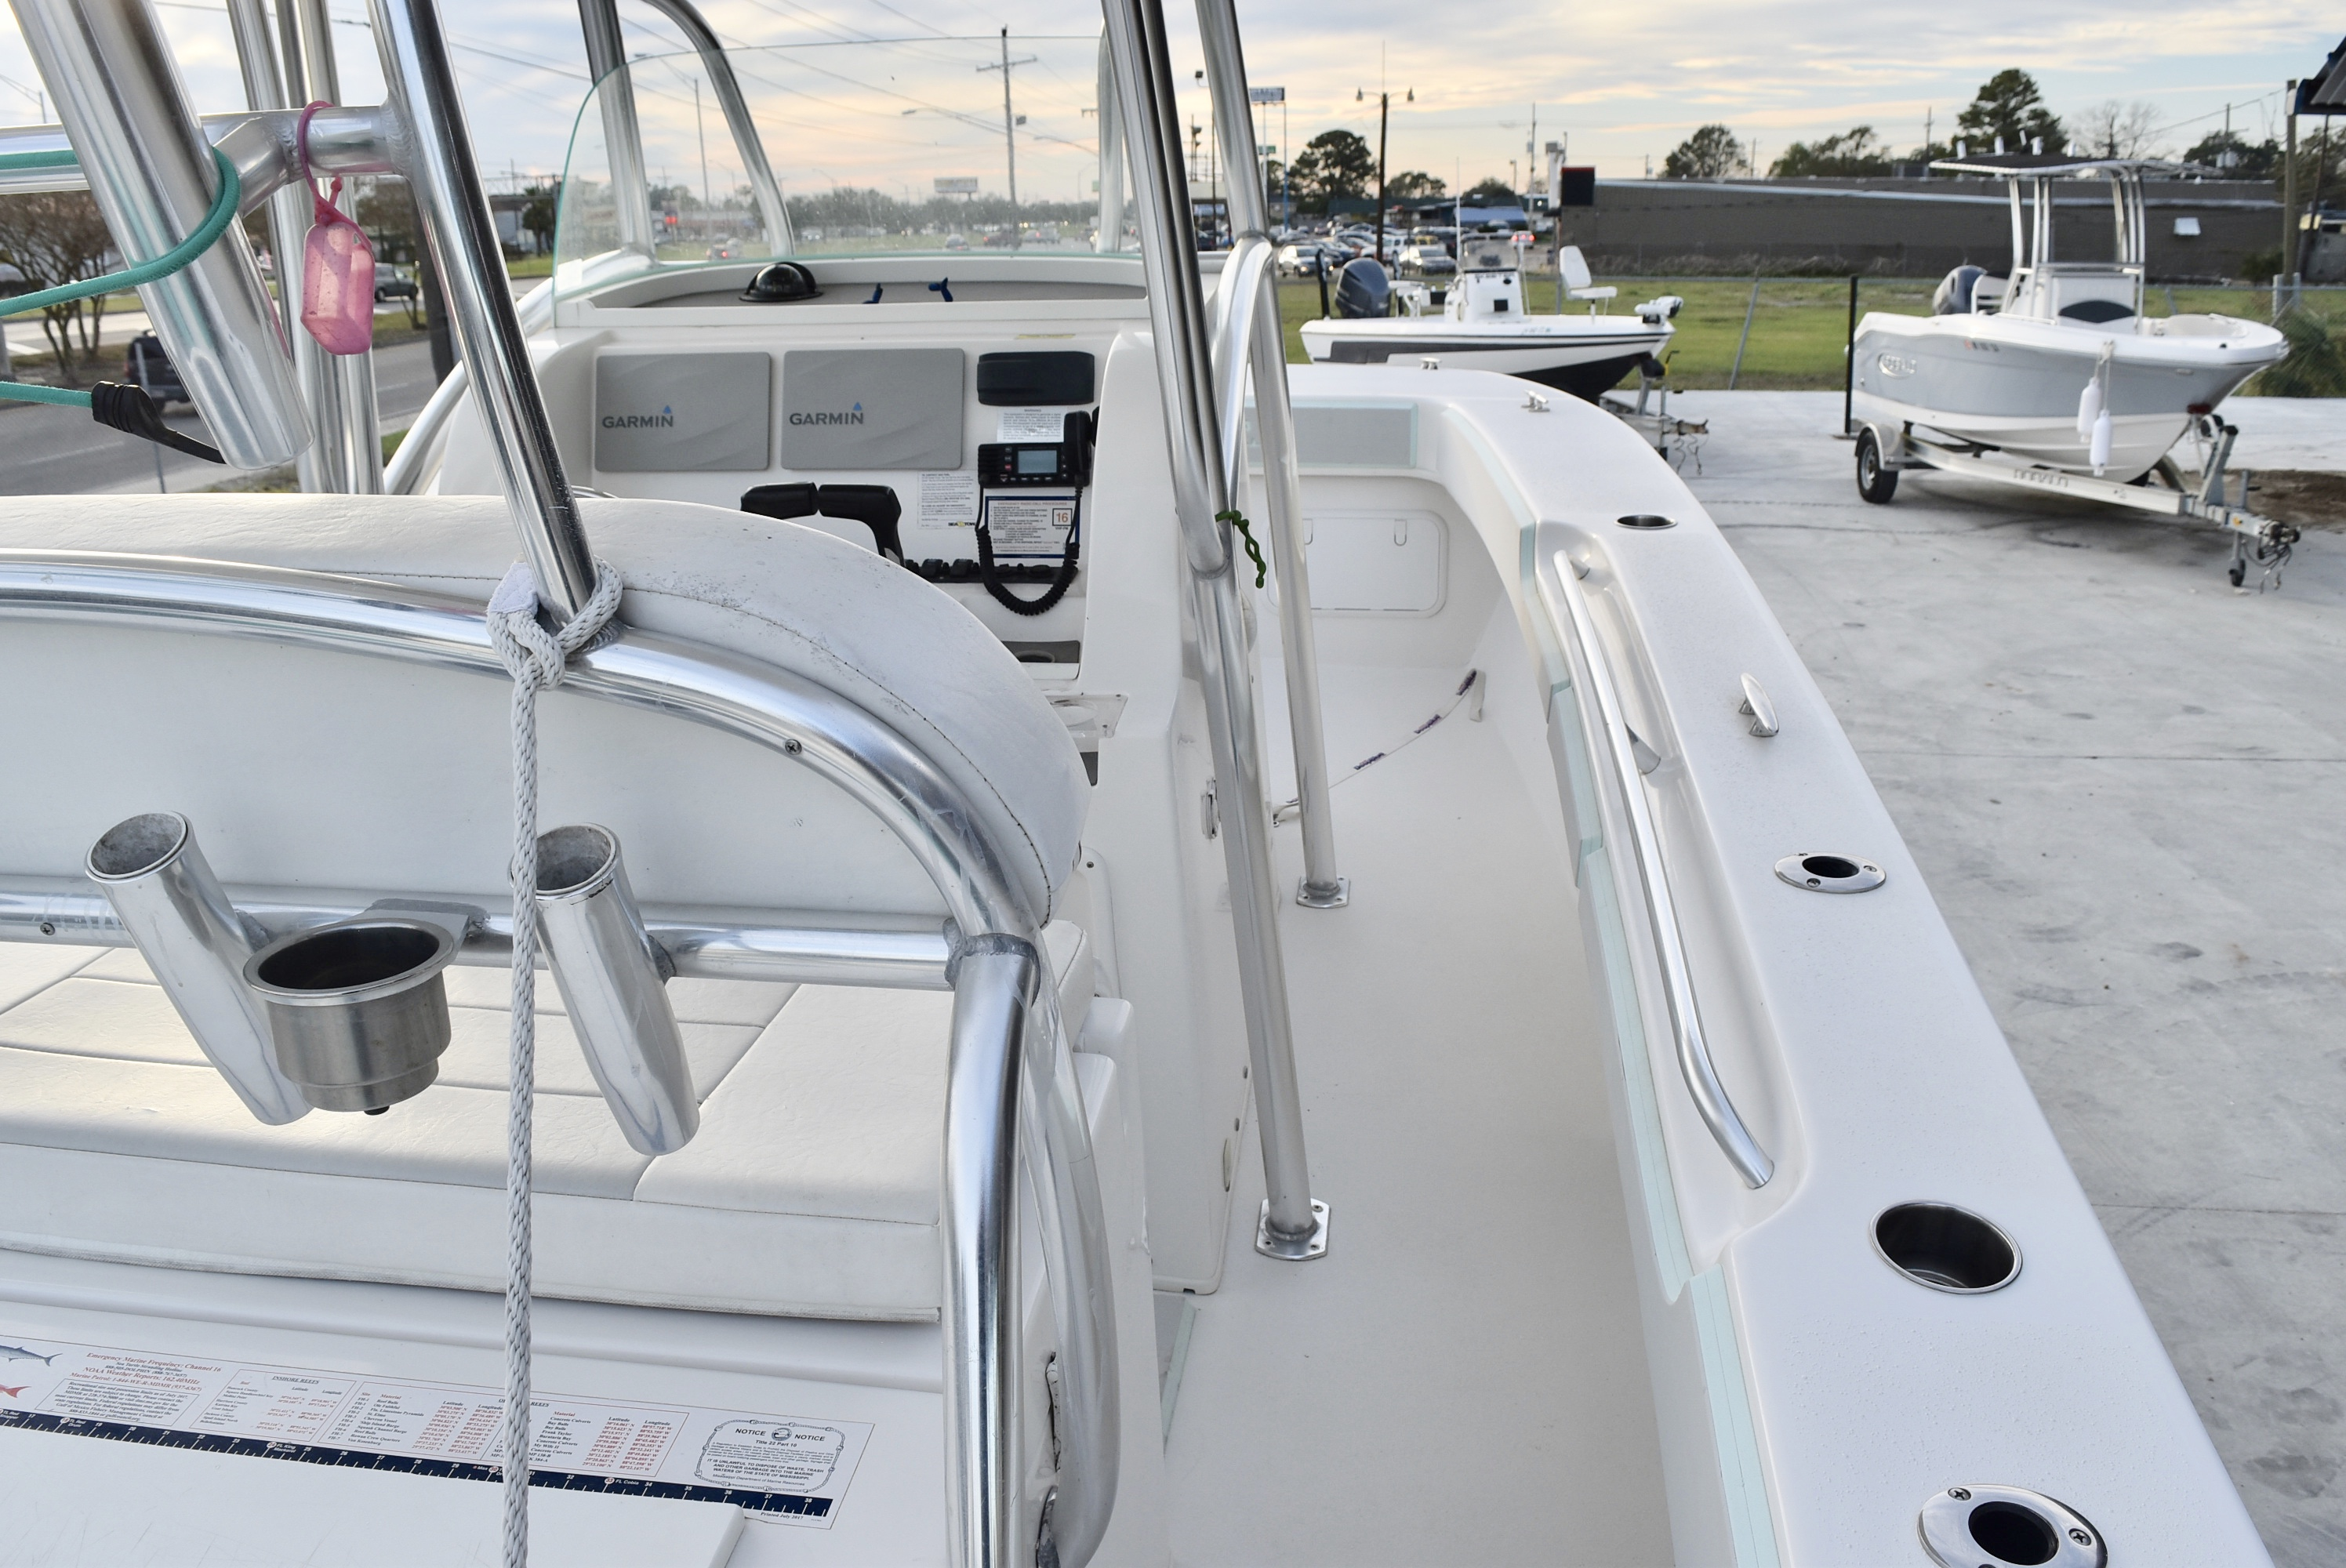 2018 Twin Vee boat for sale, model of the boat is 260 CC GF & Image # 8 of 18